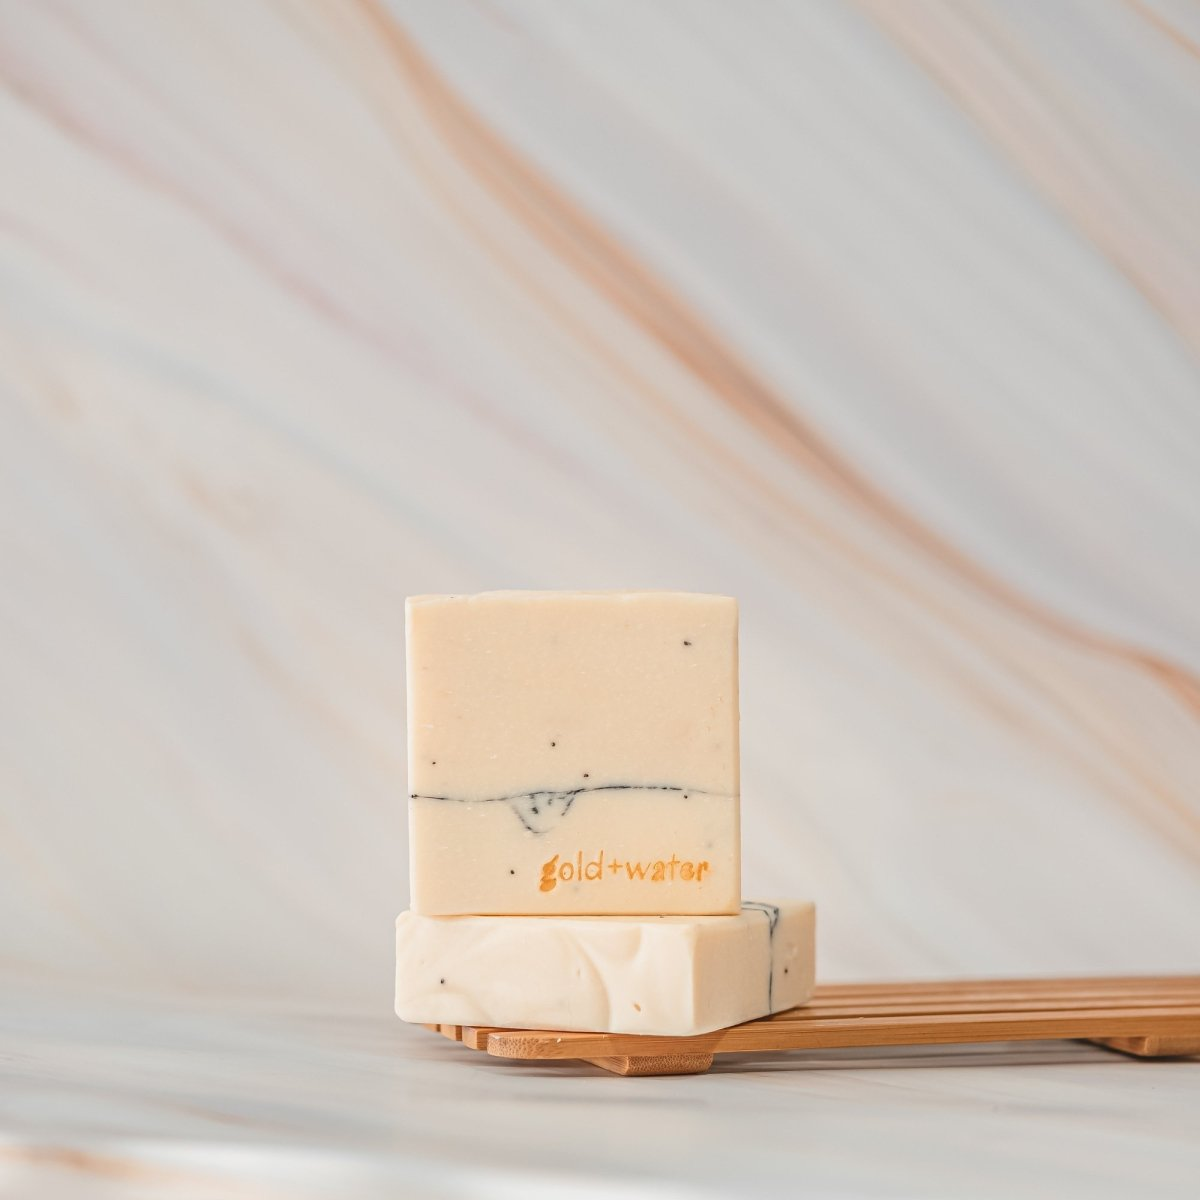 MON COEUR | Handcrafted Soap - GOLD+WATER CO.